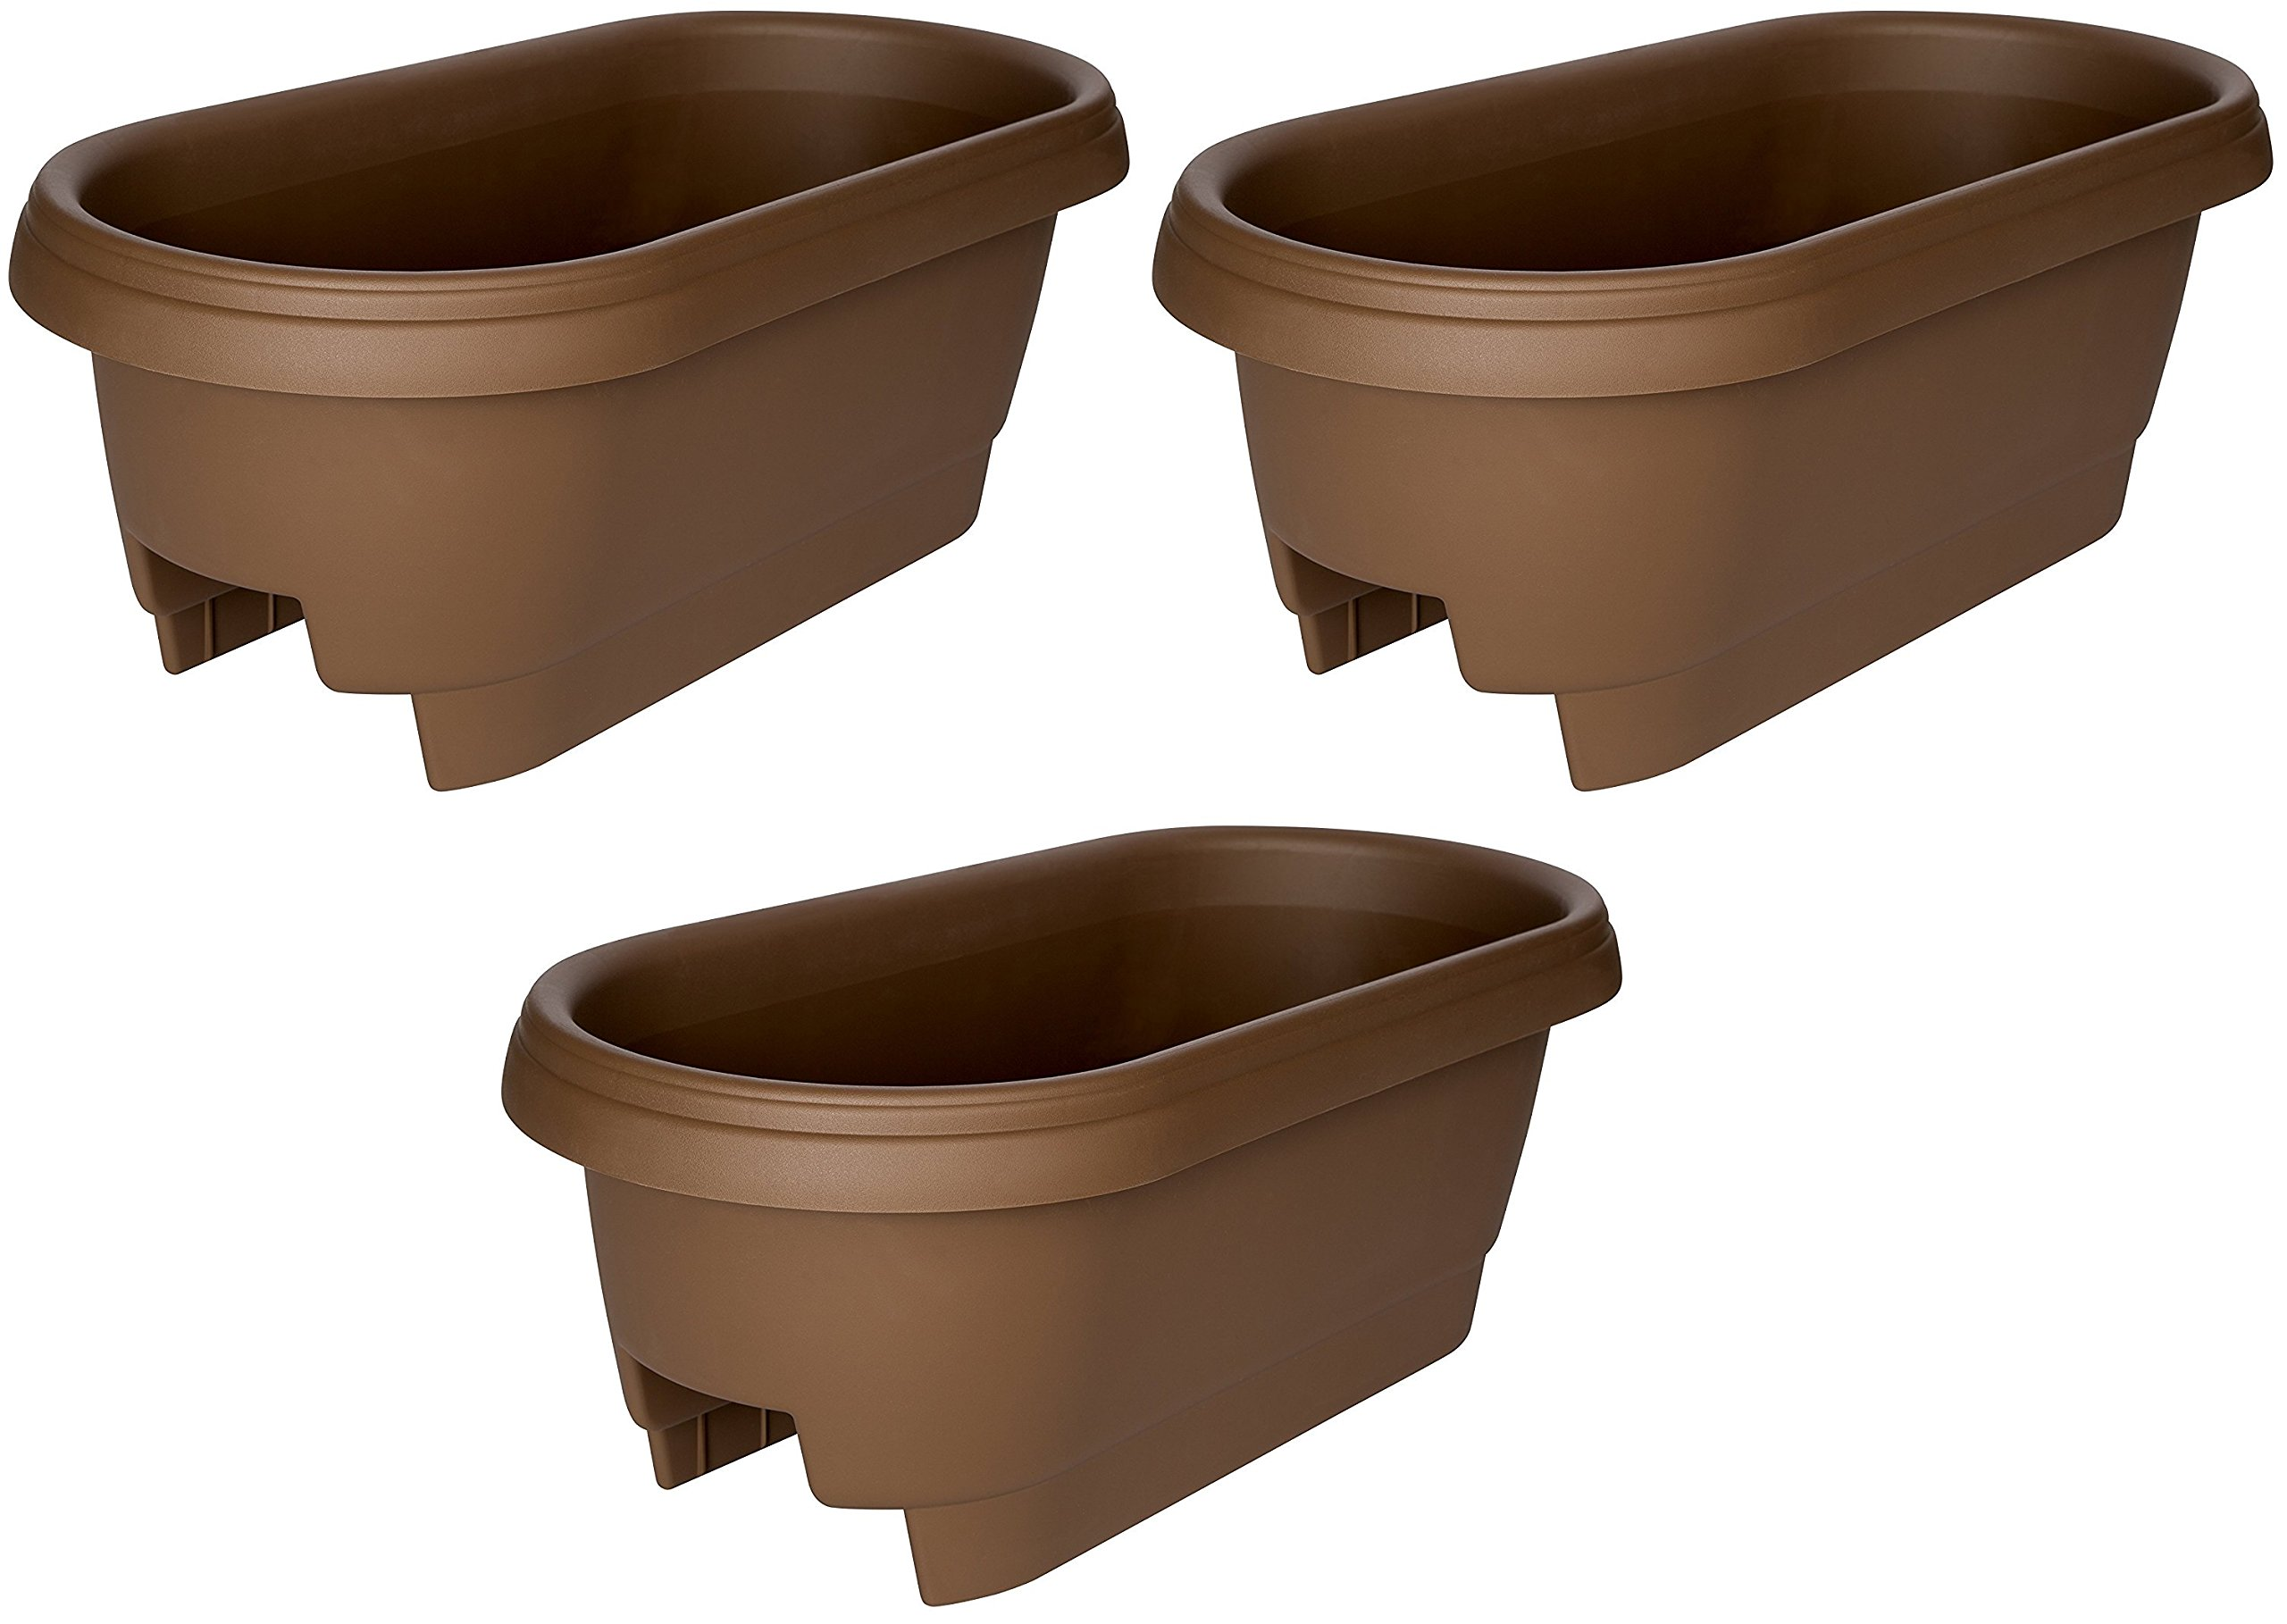 Bloem Deck Balcony Rail Planter, 24'', Chocolate (477245-1001) (3-pack) by Bloem